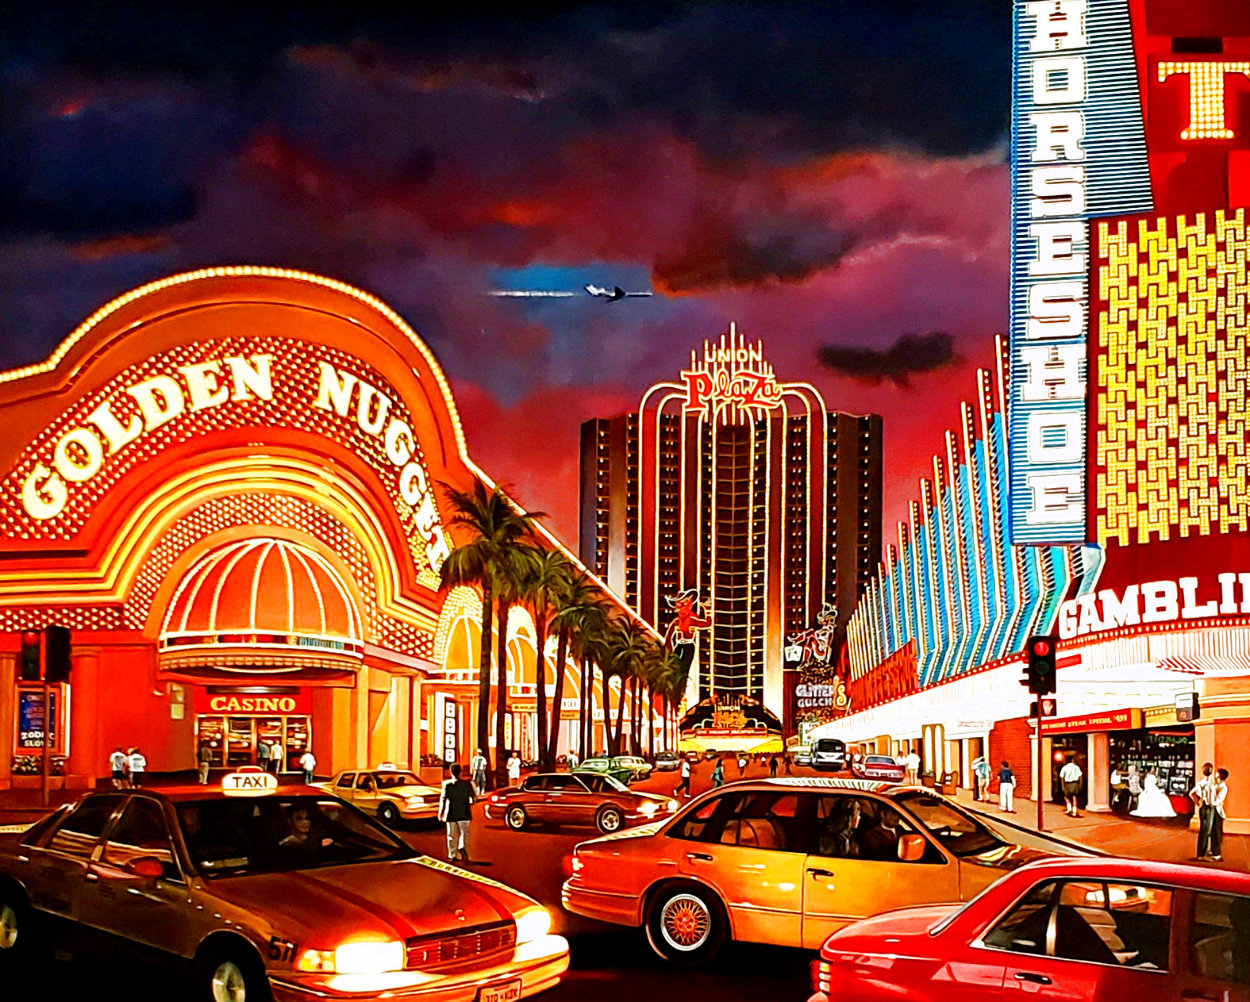 Untitled Las Vegas Cityscape 1995 50x62 Original Painting by Ken Keeley